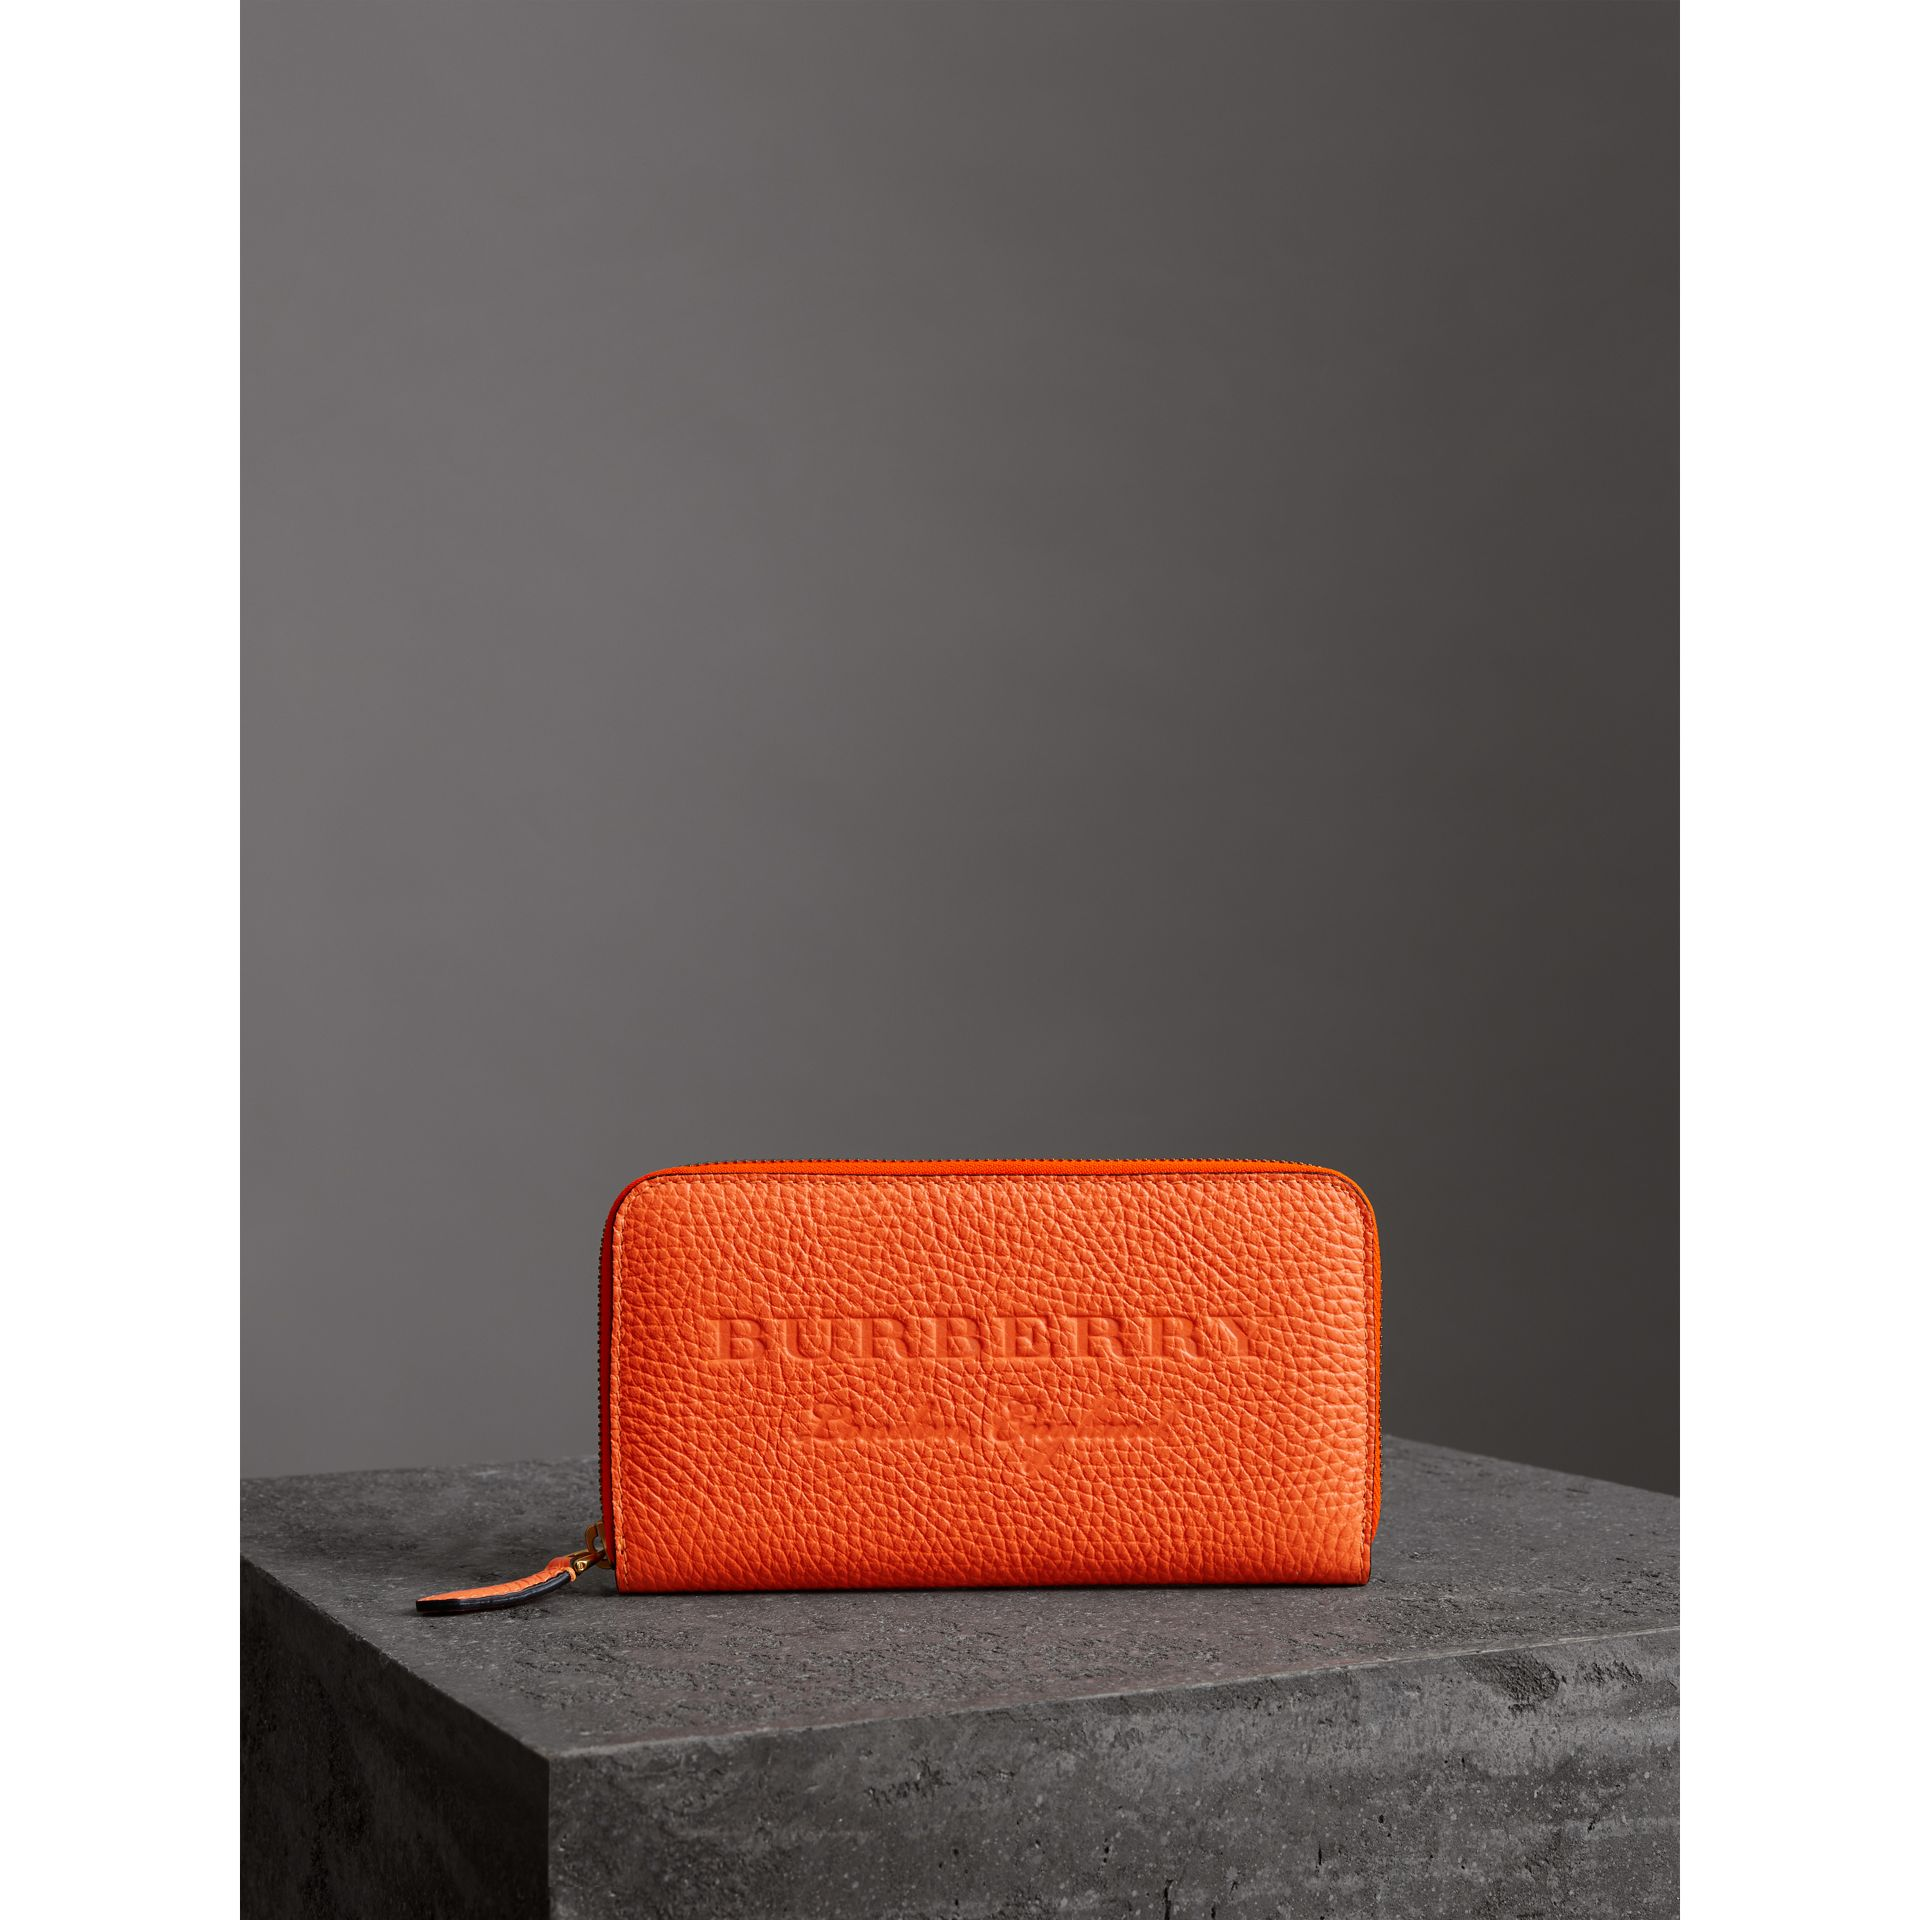 Portefeuille zippé en cuir estampé (Orange Vif) - Femme | Burberry - photo de la galerie 4